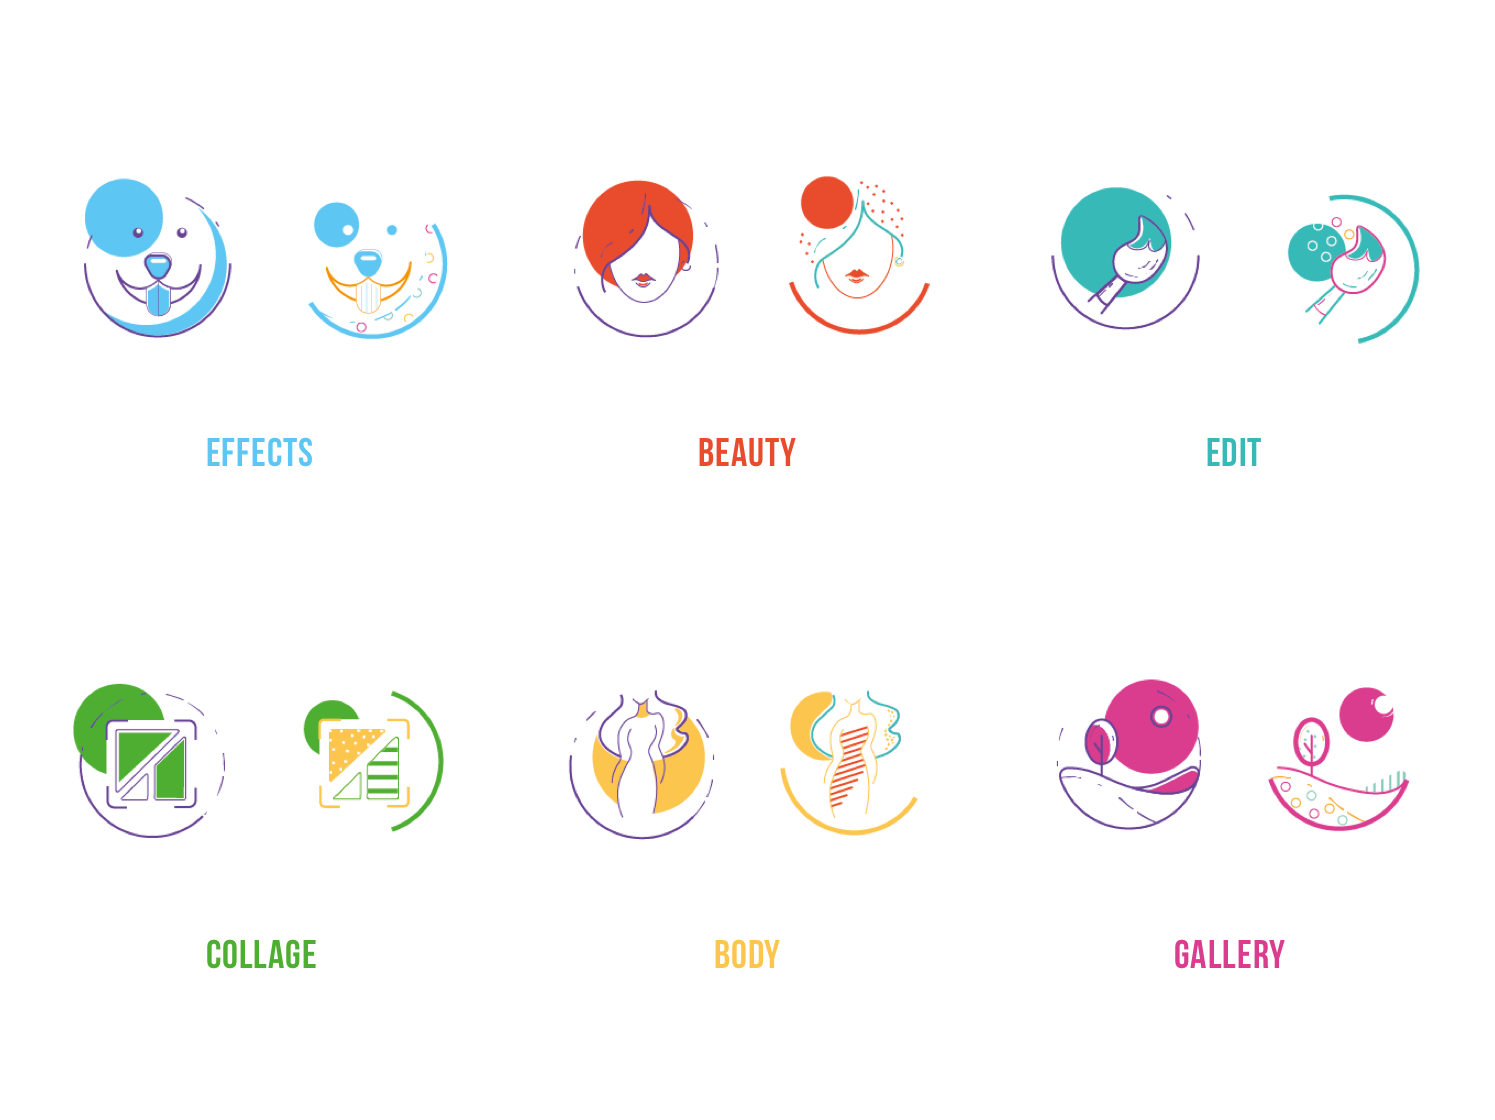 graphic design custom icons for mobile application